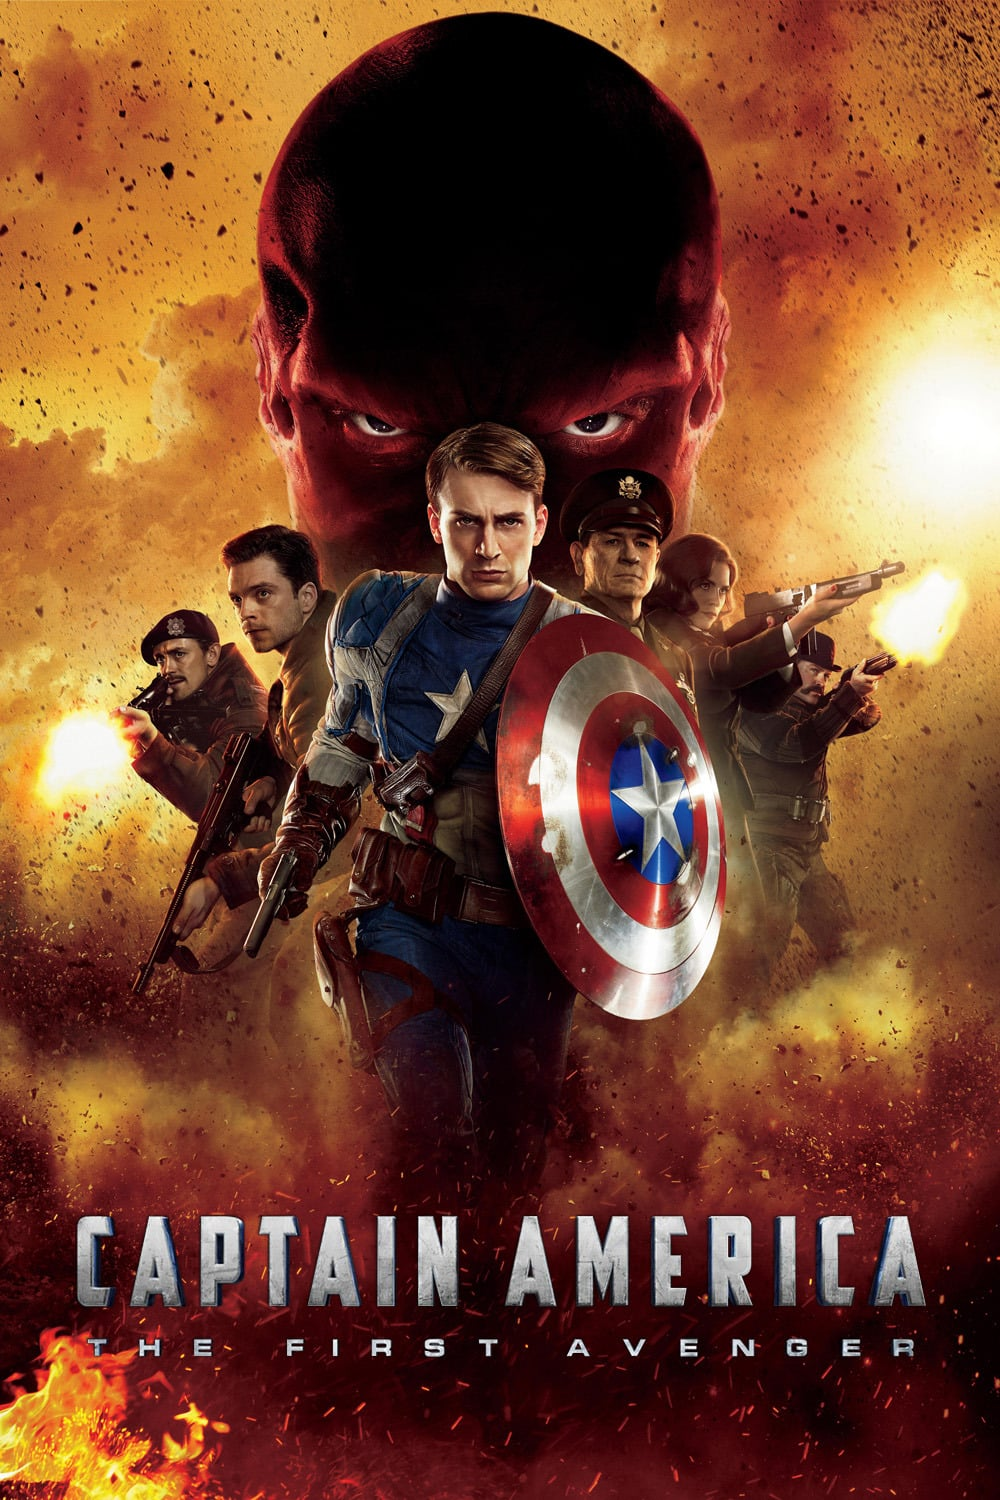 captain america poster high quality HD printable wallpapers 2011 the first avenger all characters bucky